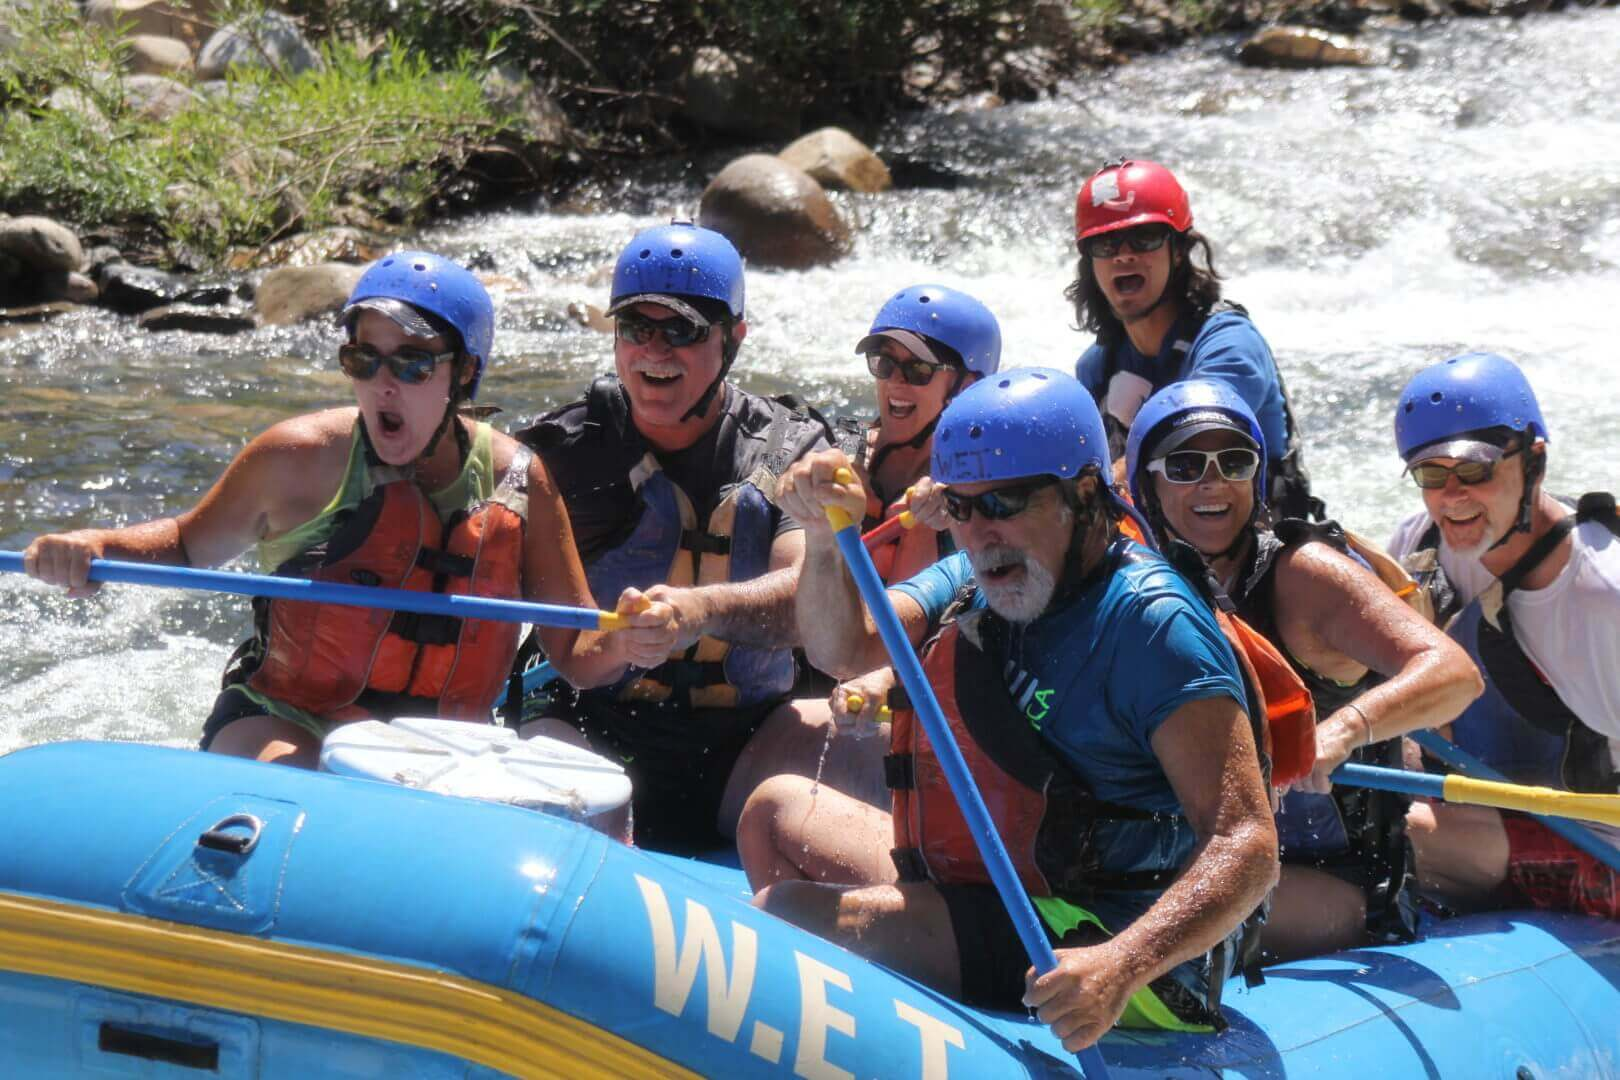 Whitewater rafting for the young and young at heart